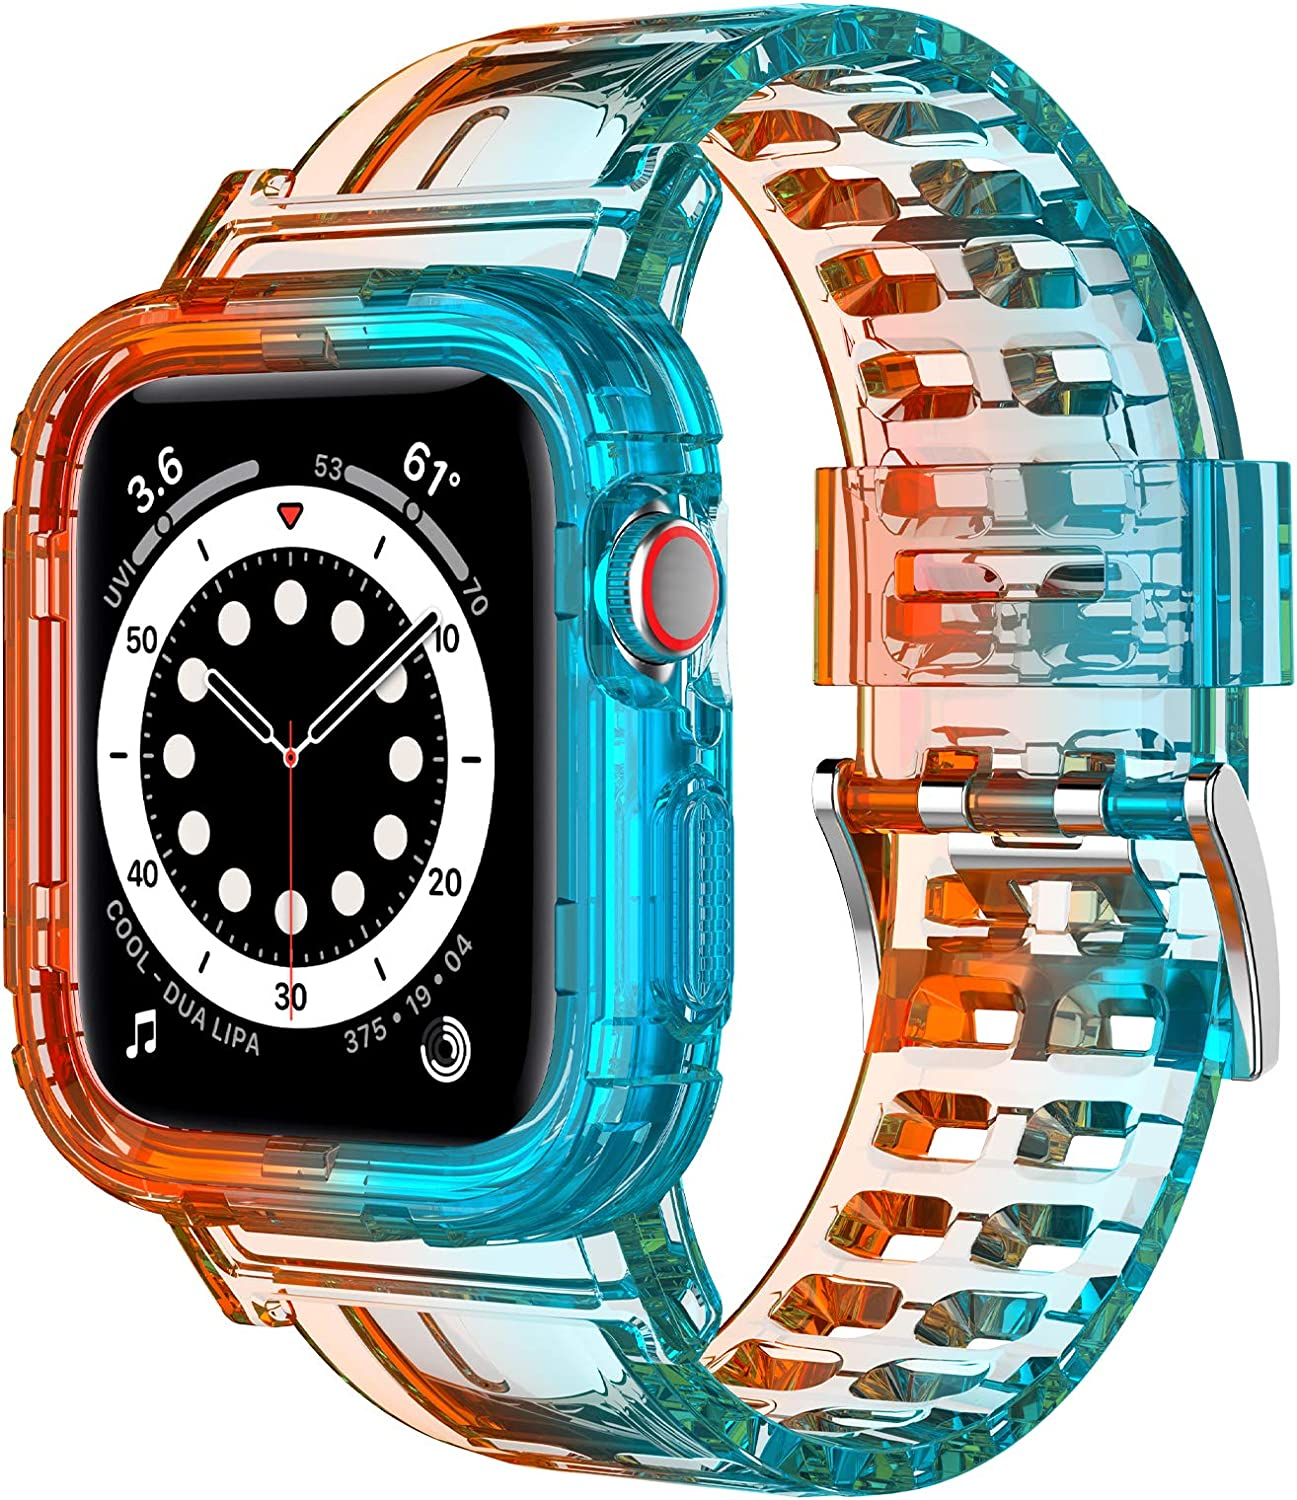 COOYA Compatible with Apple Watch Band 40mm 38mm Adjustable Wristband with Protective Bumper Case Breathable Sport Strap Cute Girls Replacement Band Compatible with Apple iWatch Series 6 SE 5 4 3 2